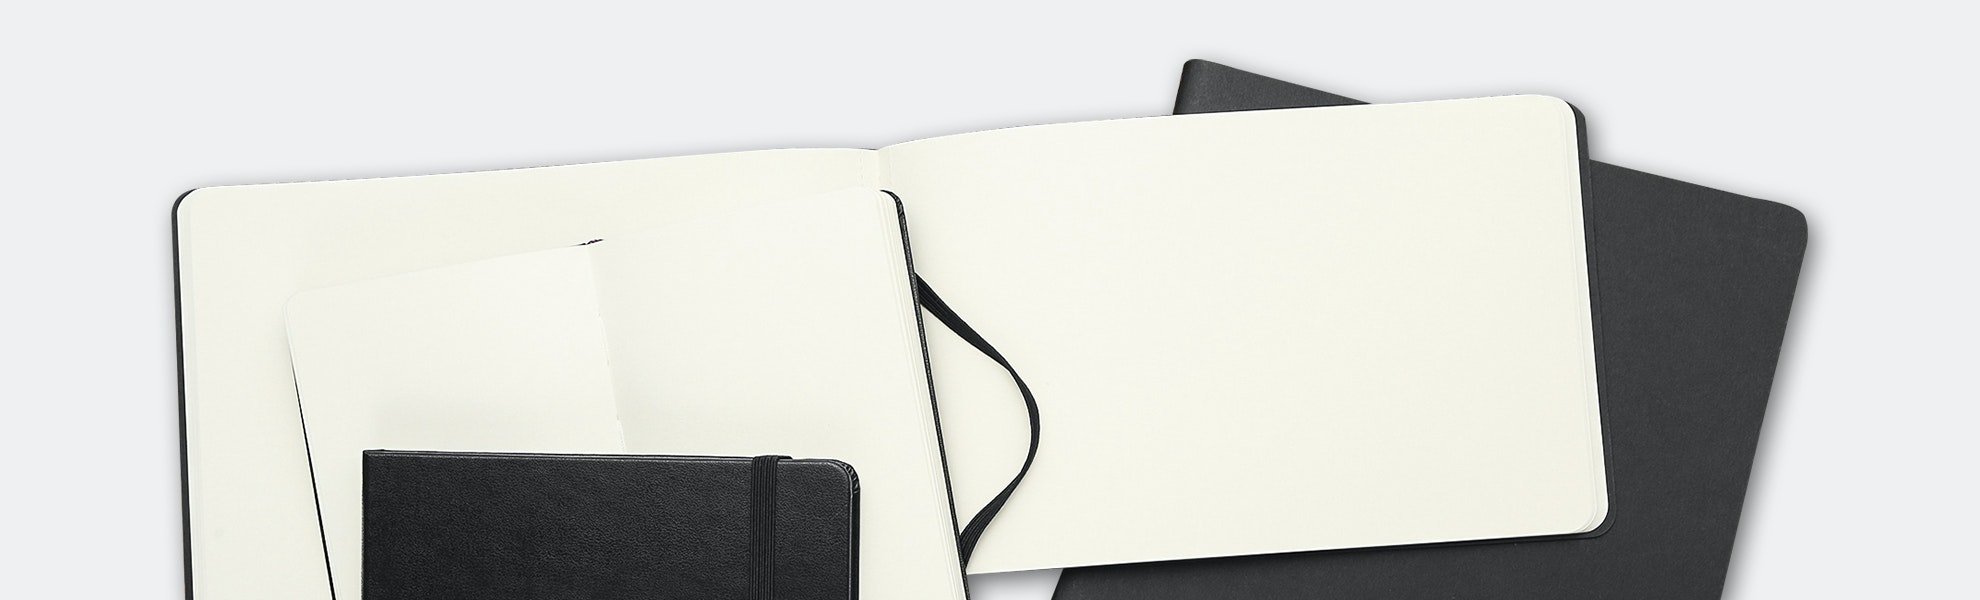 Moleskine Art Plus Sketch Album (2-Pack)